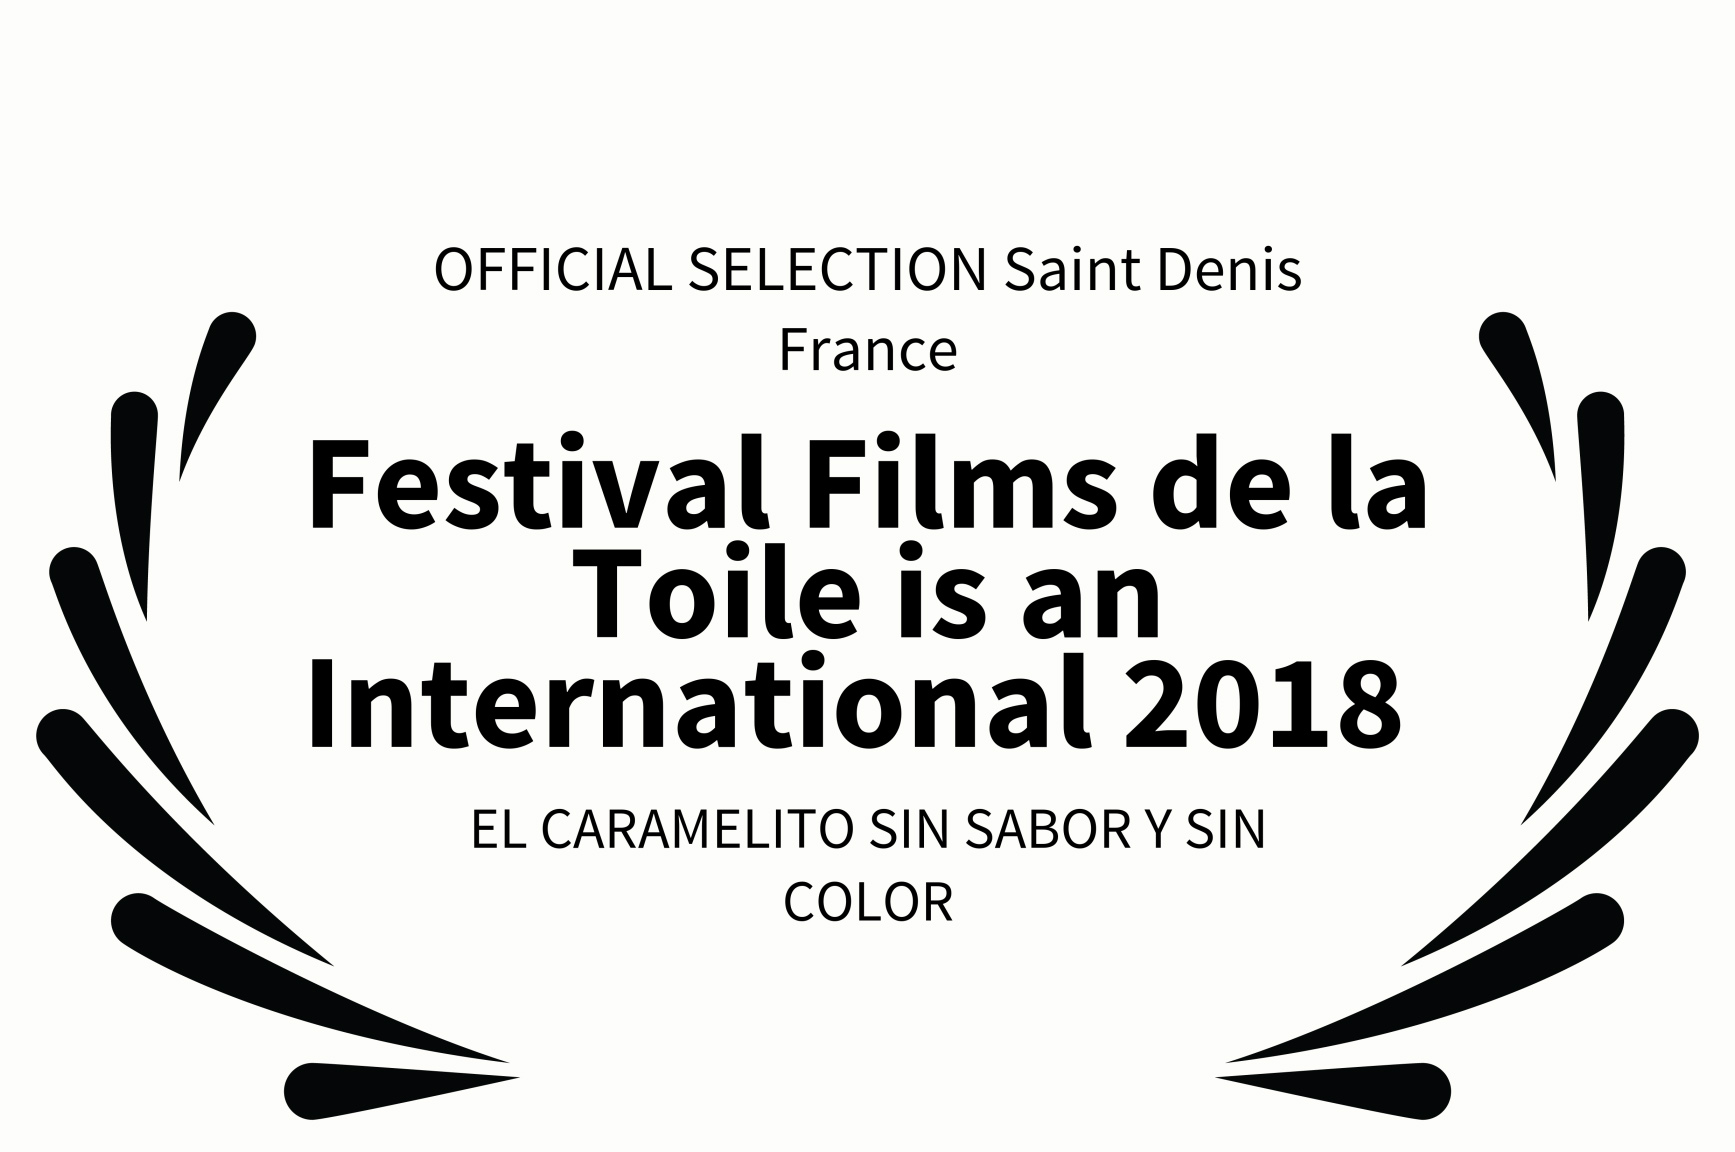 OFFICIALSELECTION Saint Denis France - Festival Films de la Toile is an International 2018  - EL CAR